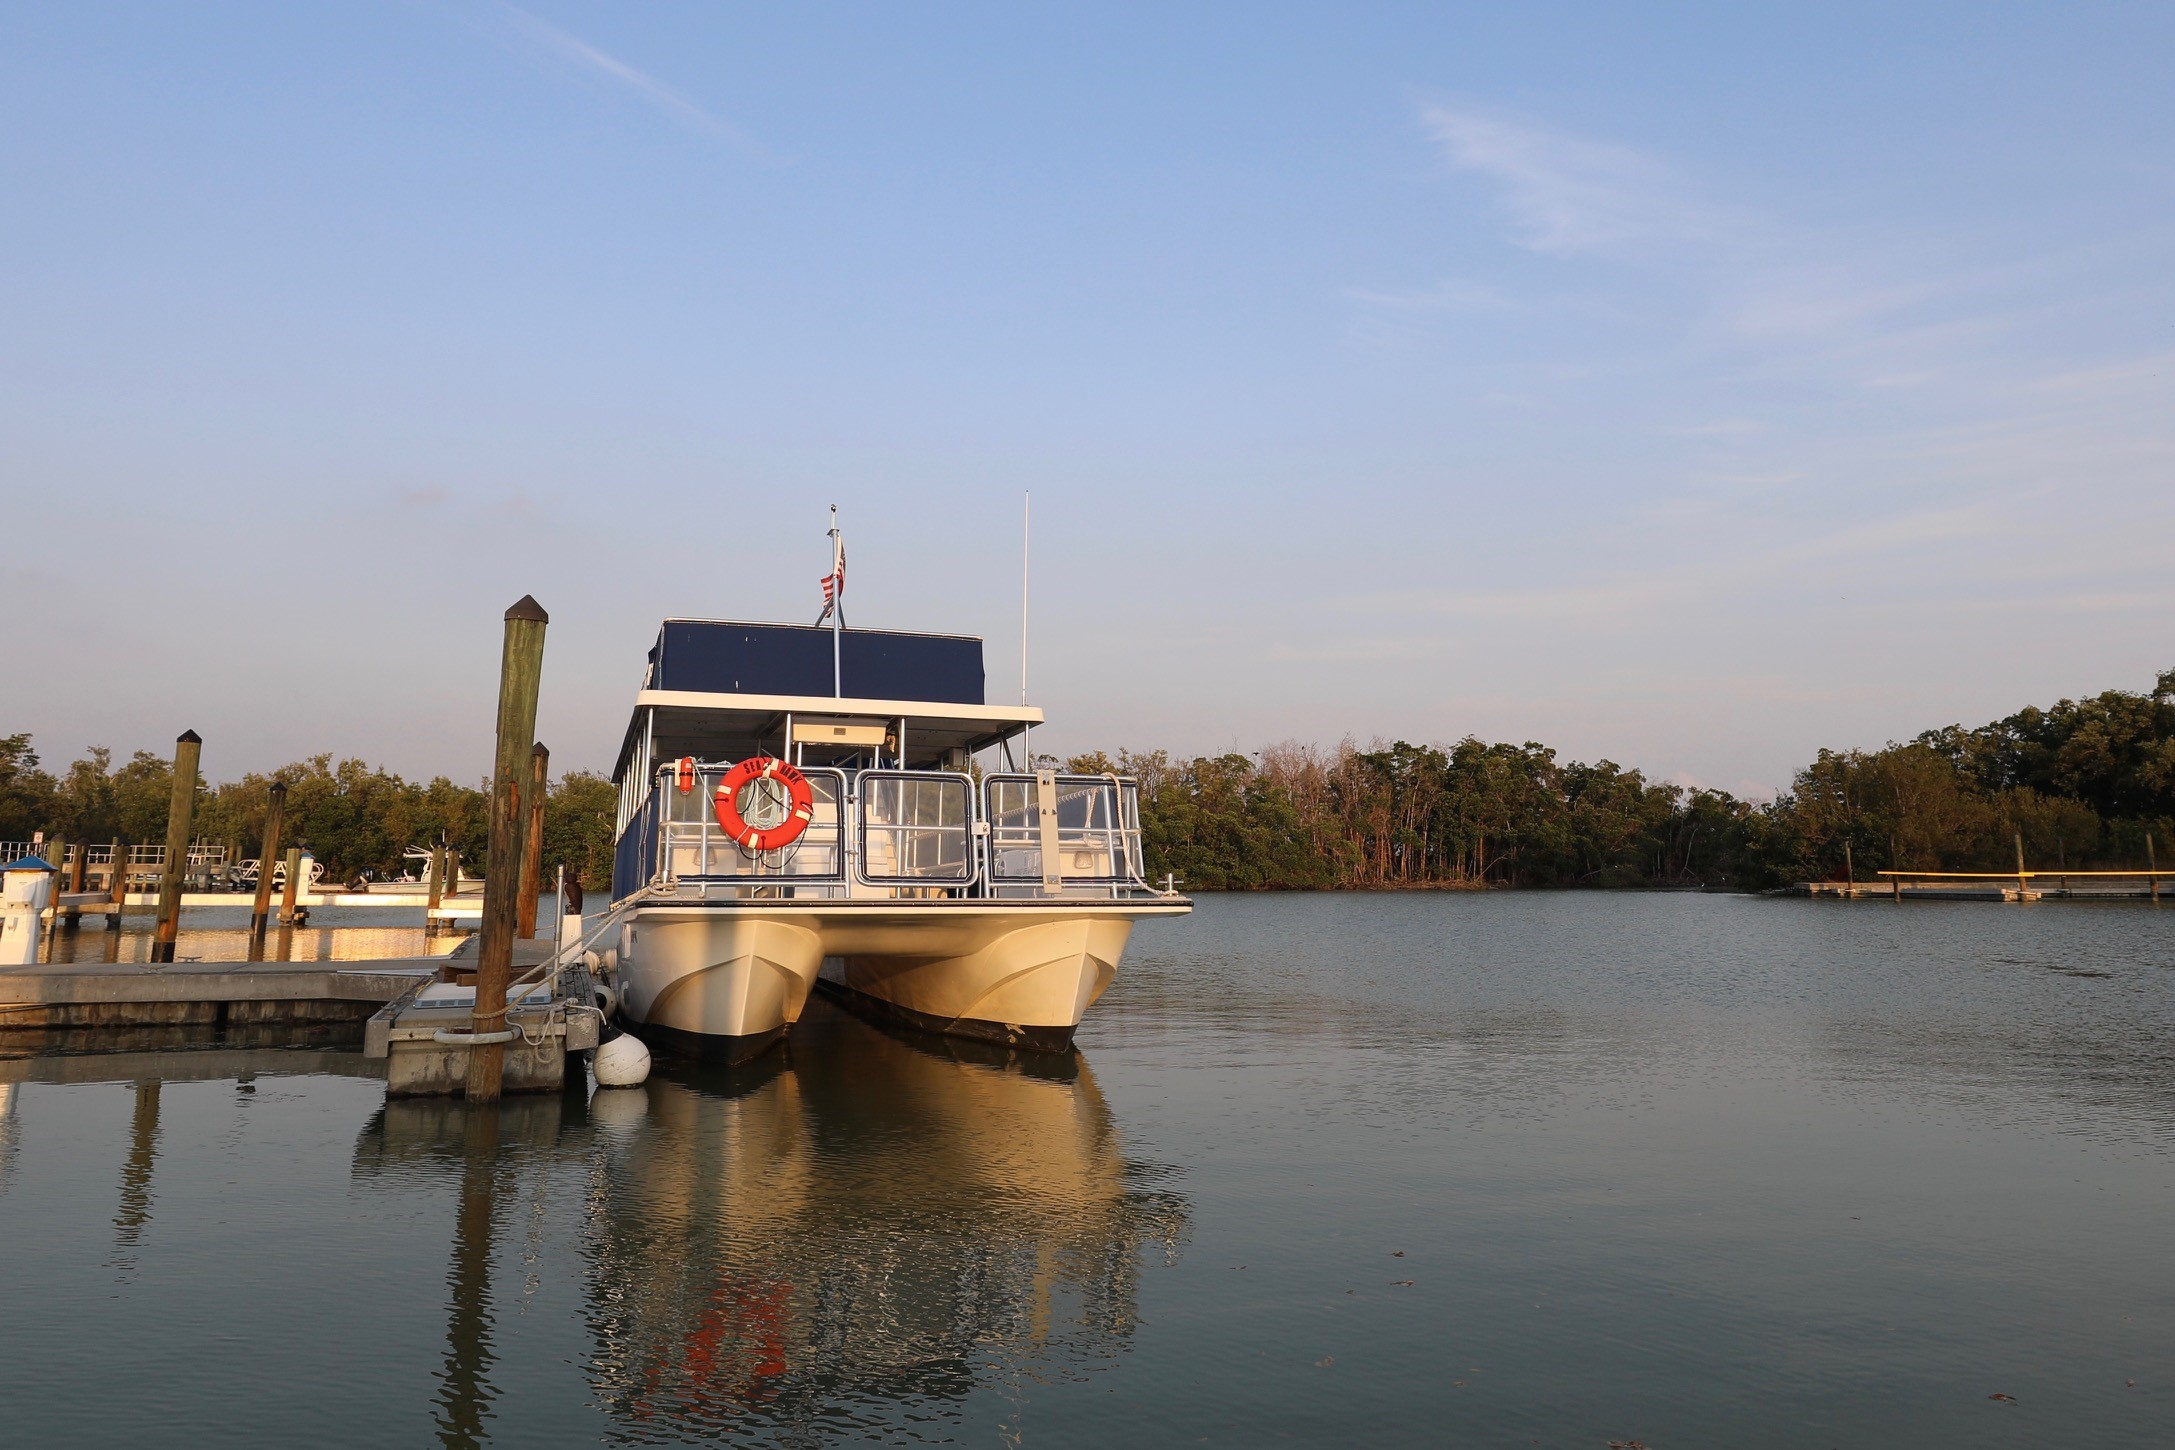 A tour boat docked at the Flamingo Marina in Everglades National Park. The sky is blue and mostly clear and there are mangrove trees in the background.